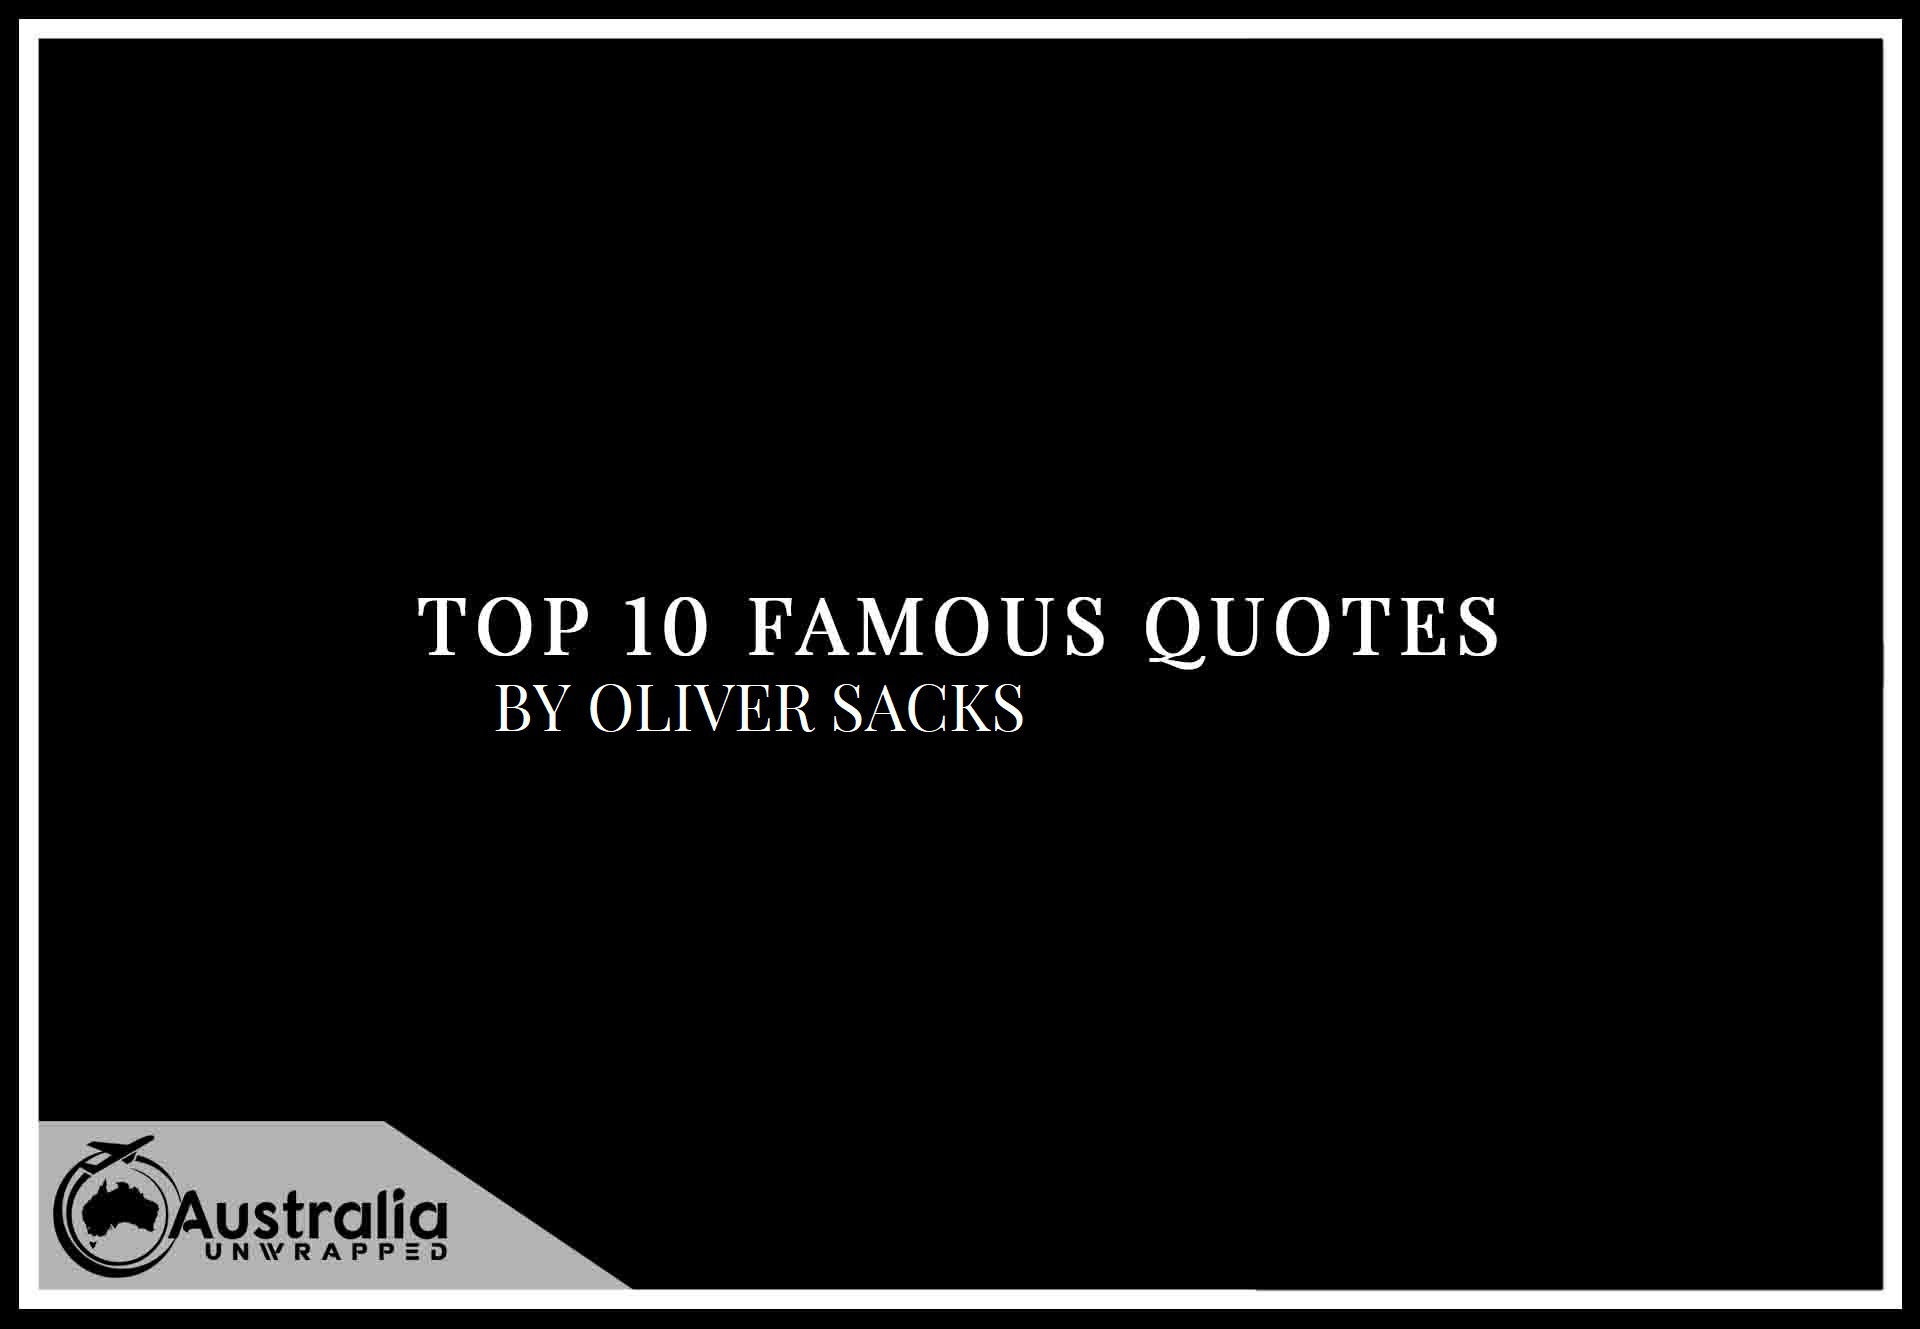 Top 10 Famous Quotes by Author Oliver Sacks